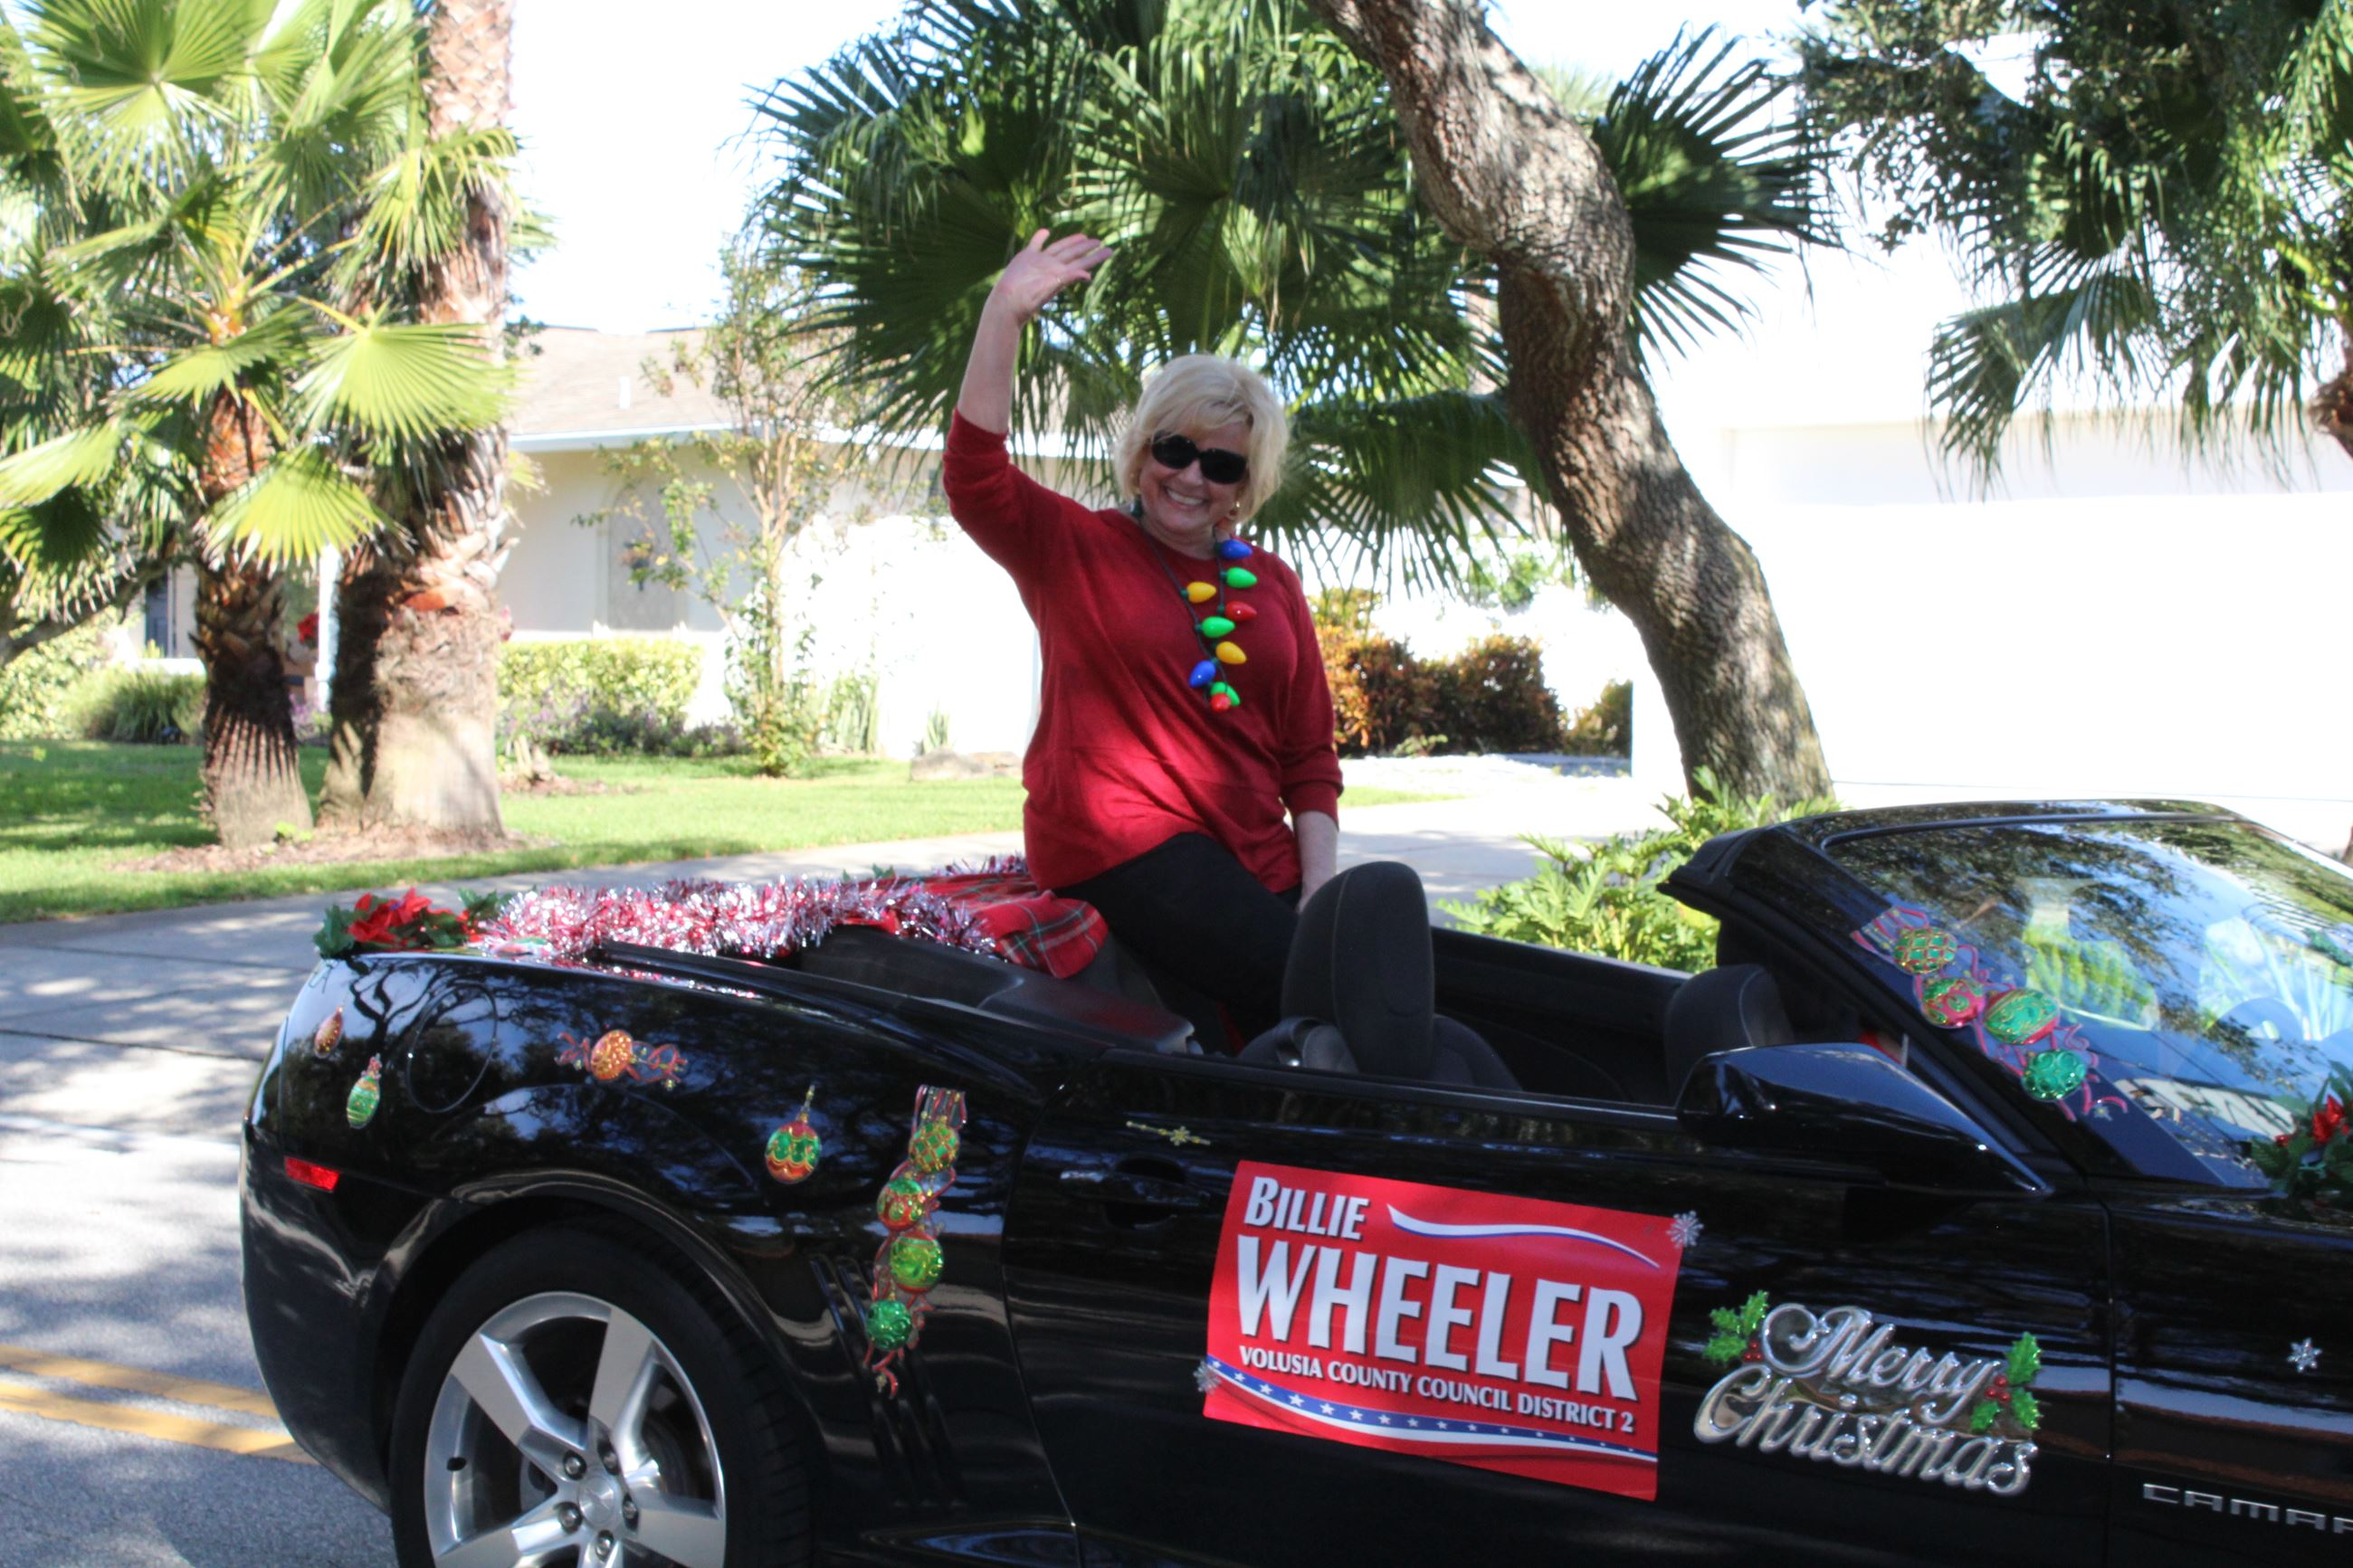 Billie Wheeler riding in red convertible waving